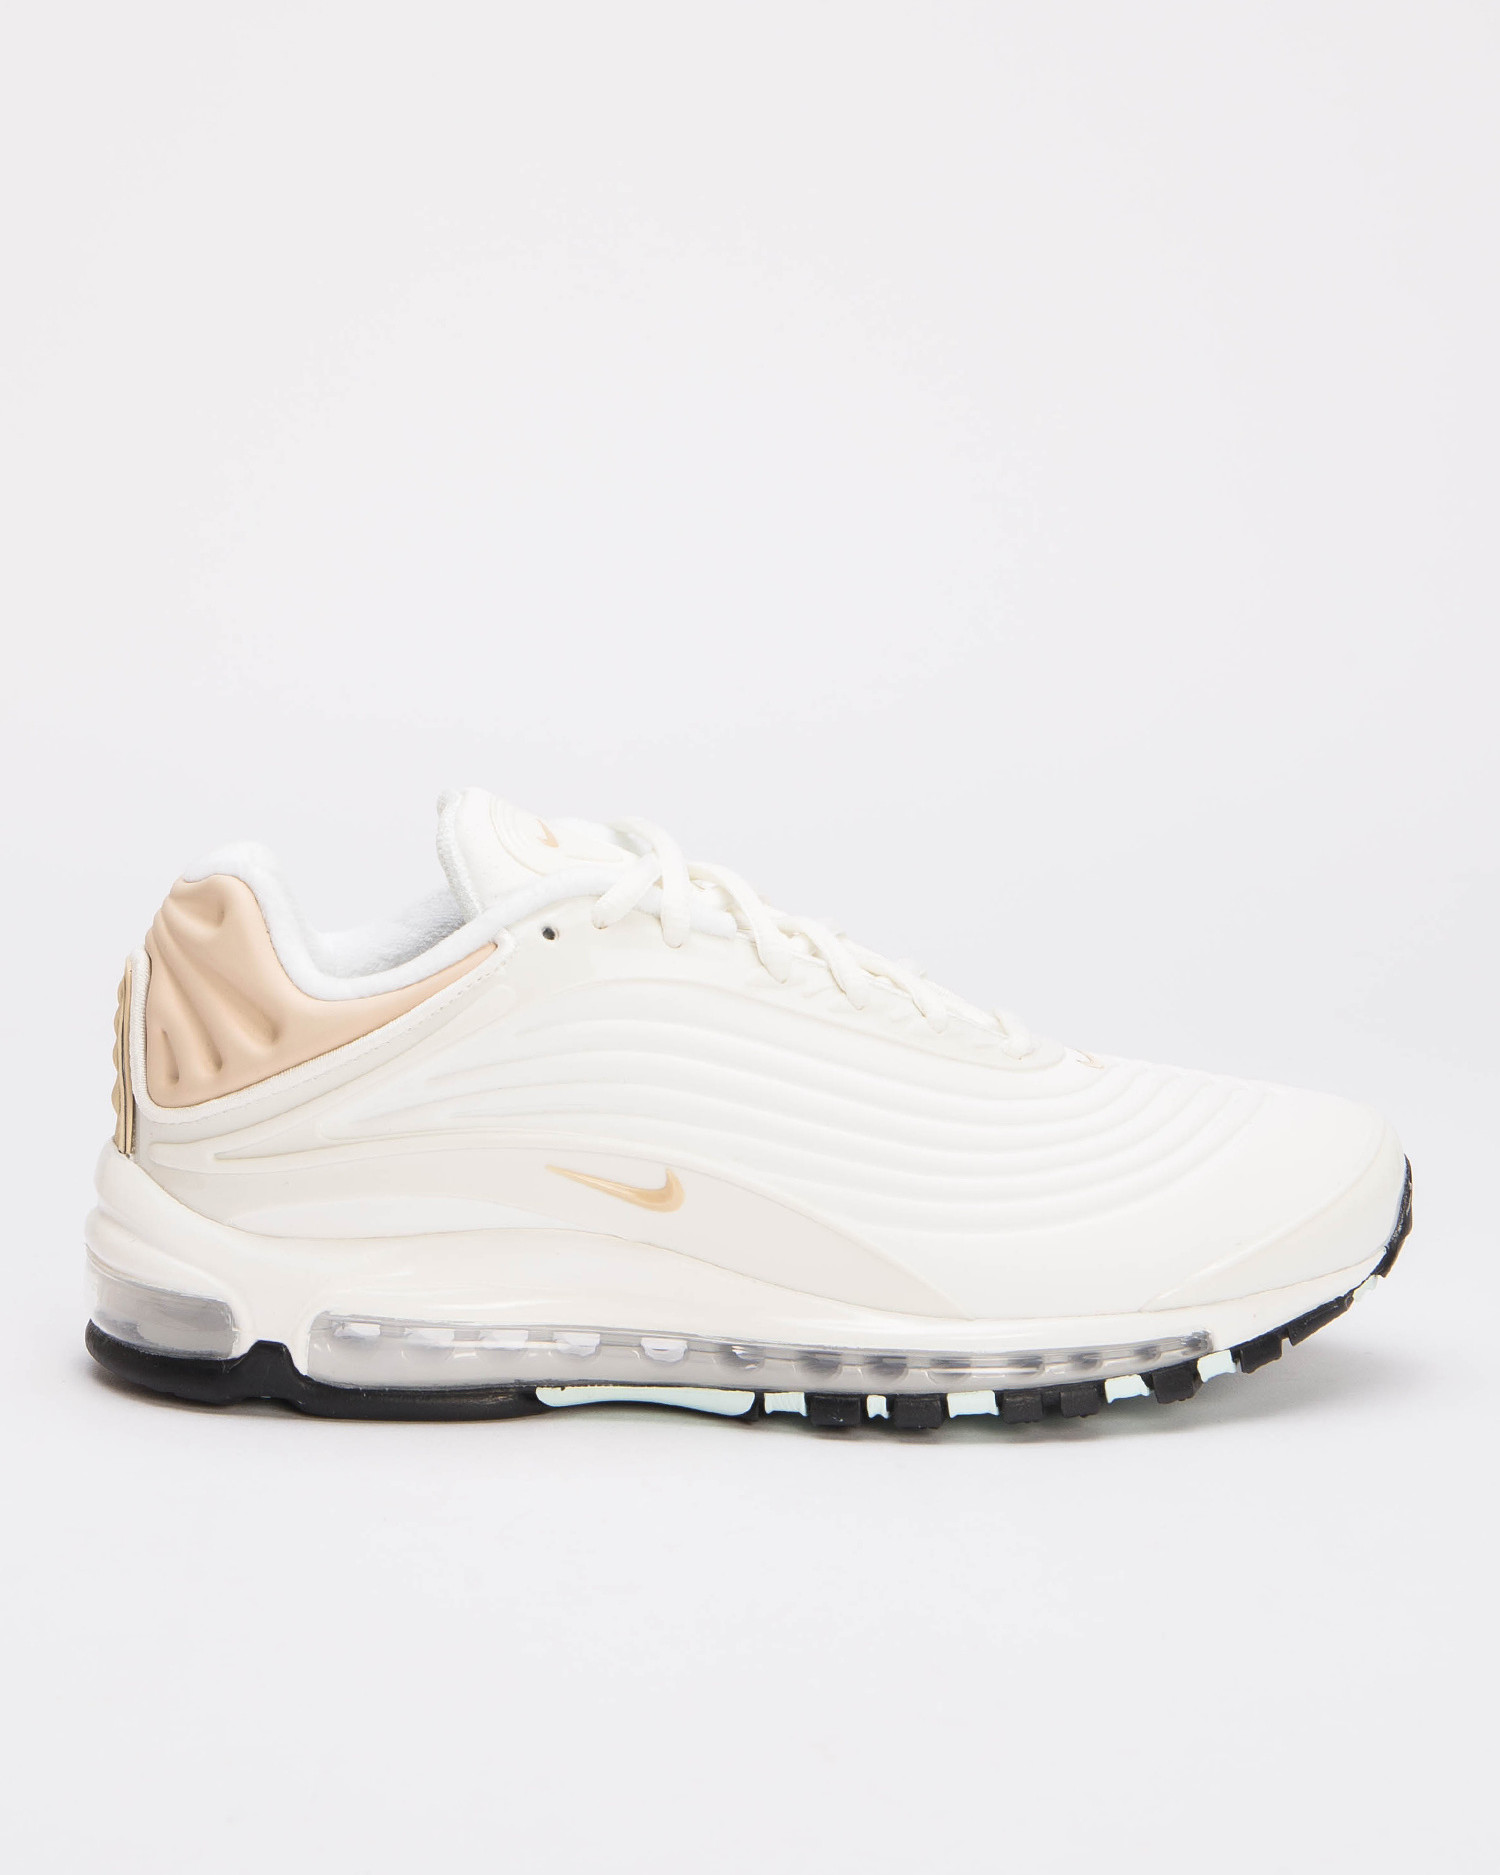 Nike Nike Air Max Deluxe Se SailDesert Ore Teal Tint Black